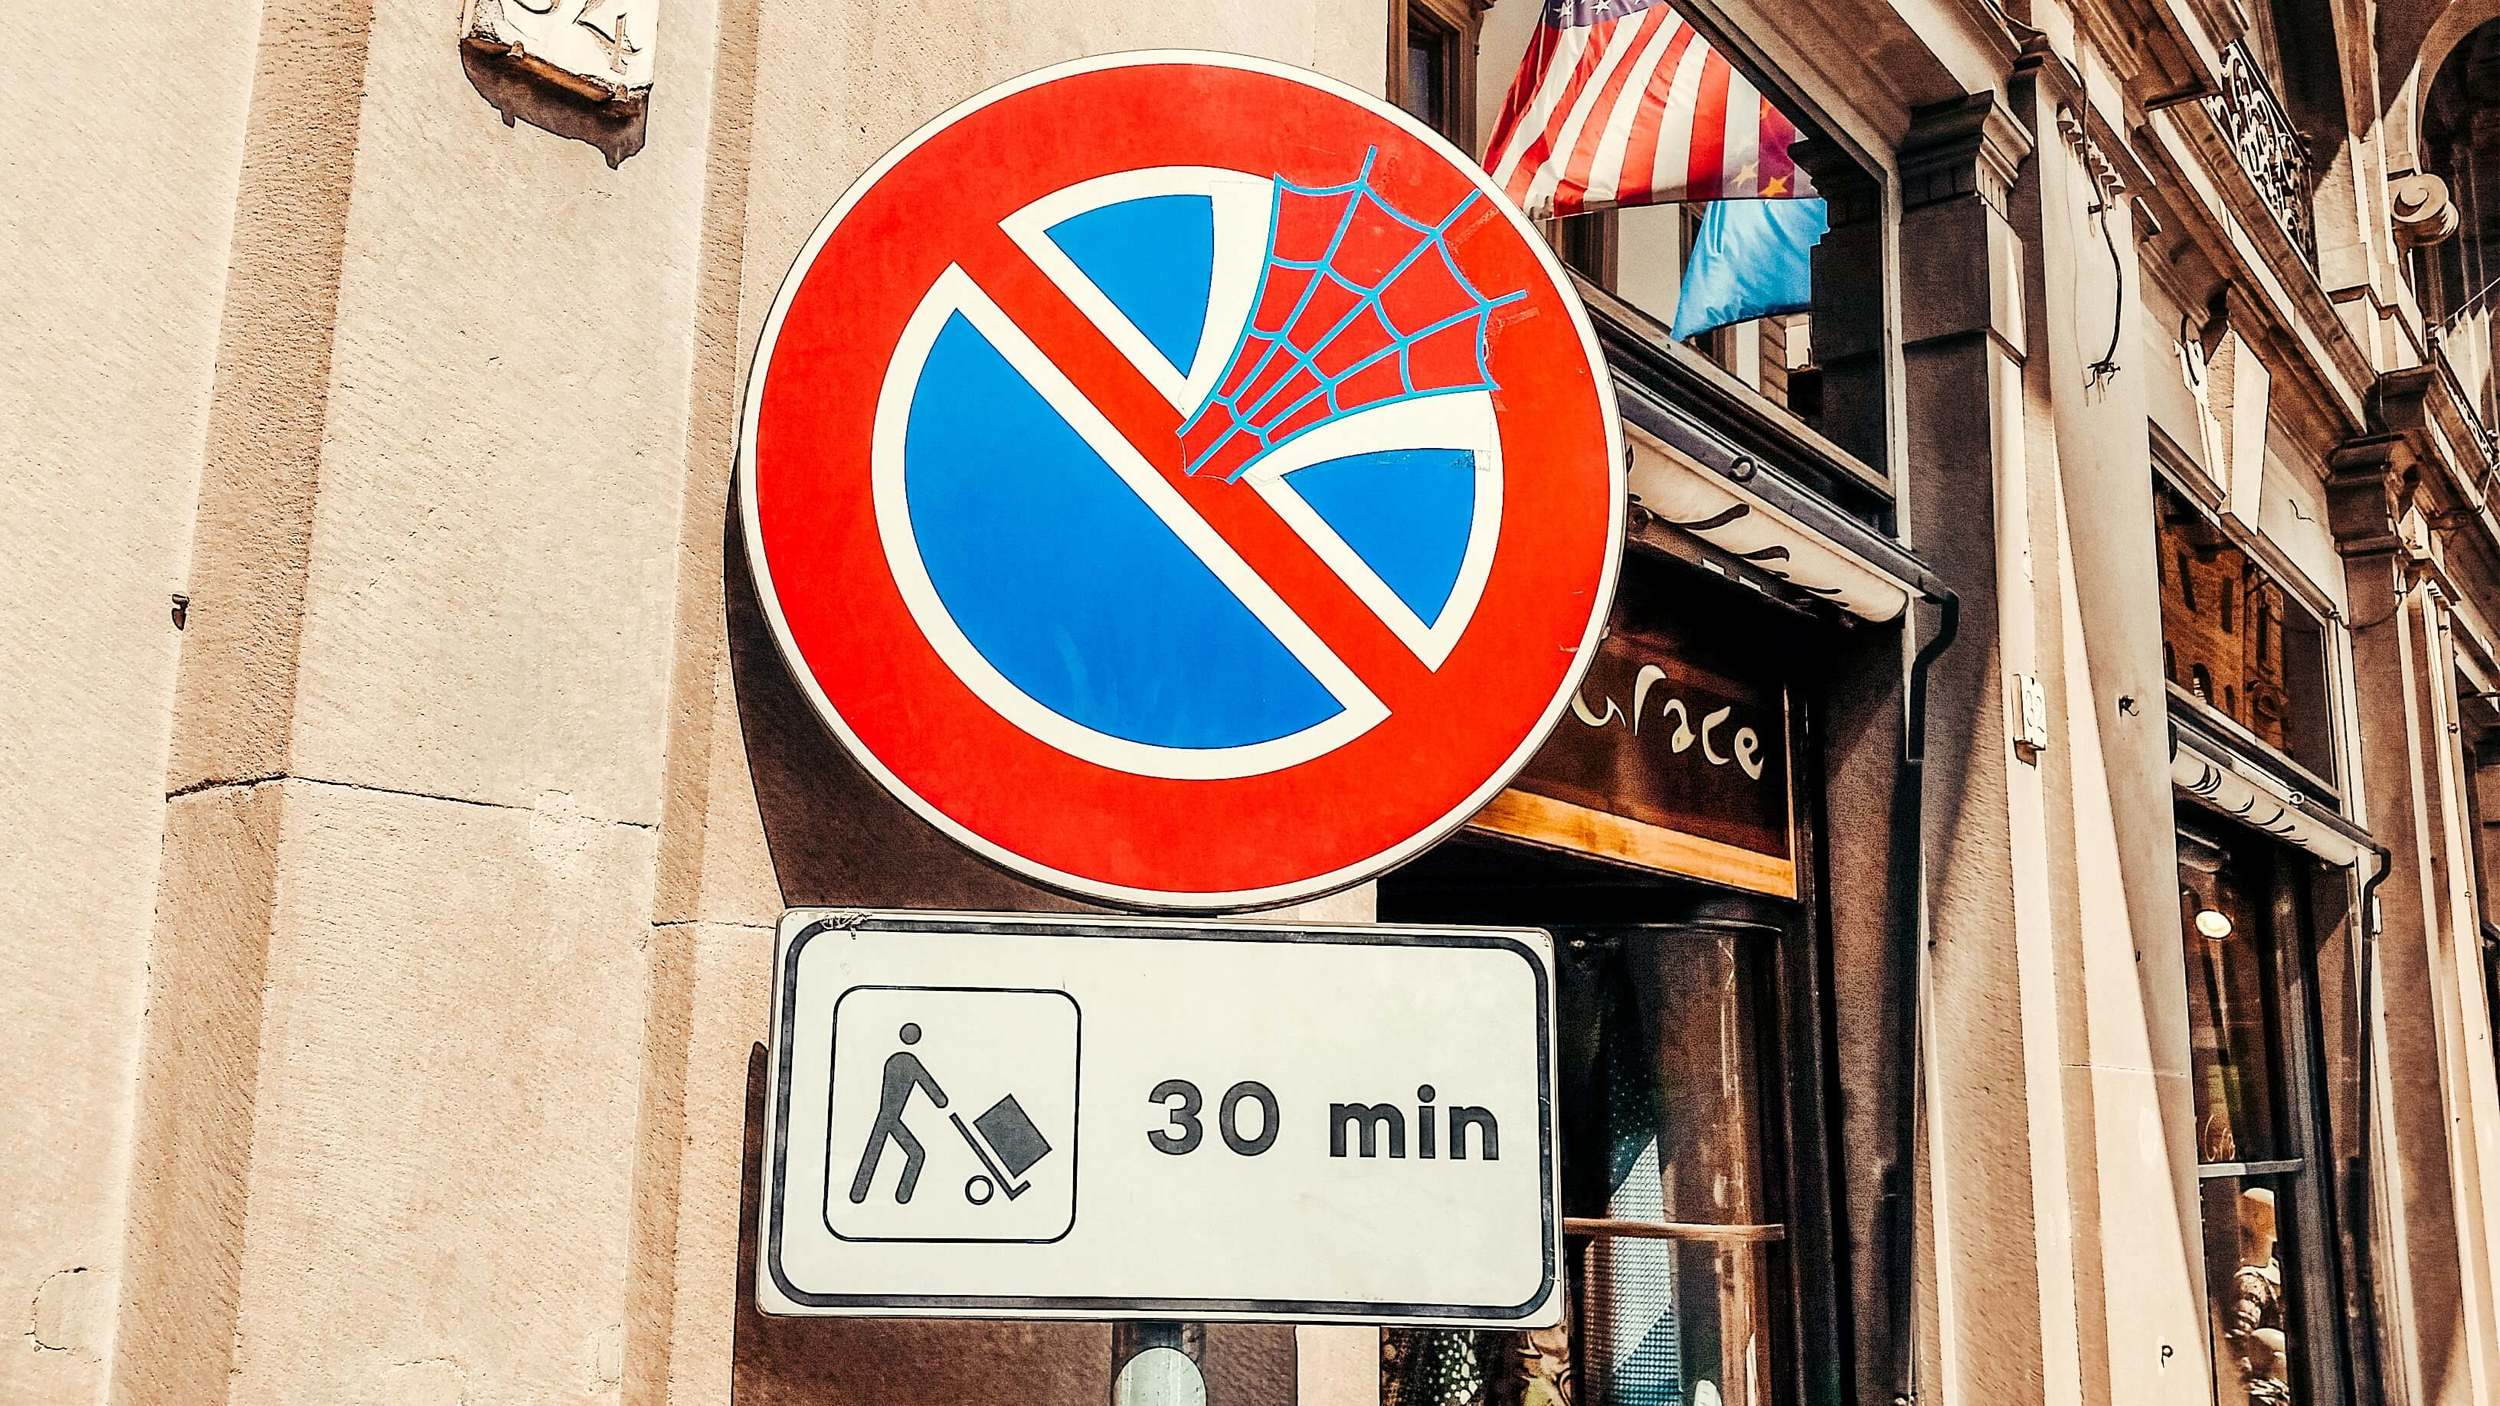 spiderman italy street sign